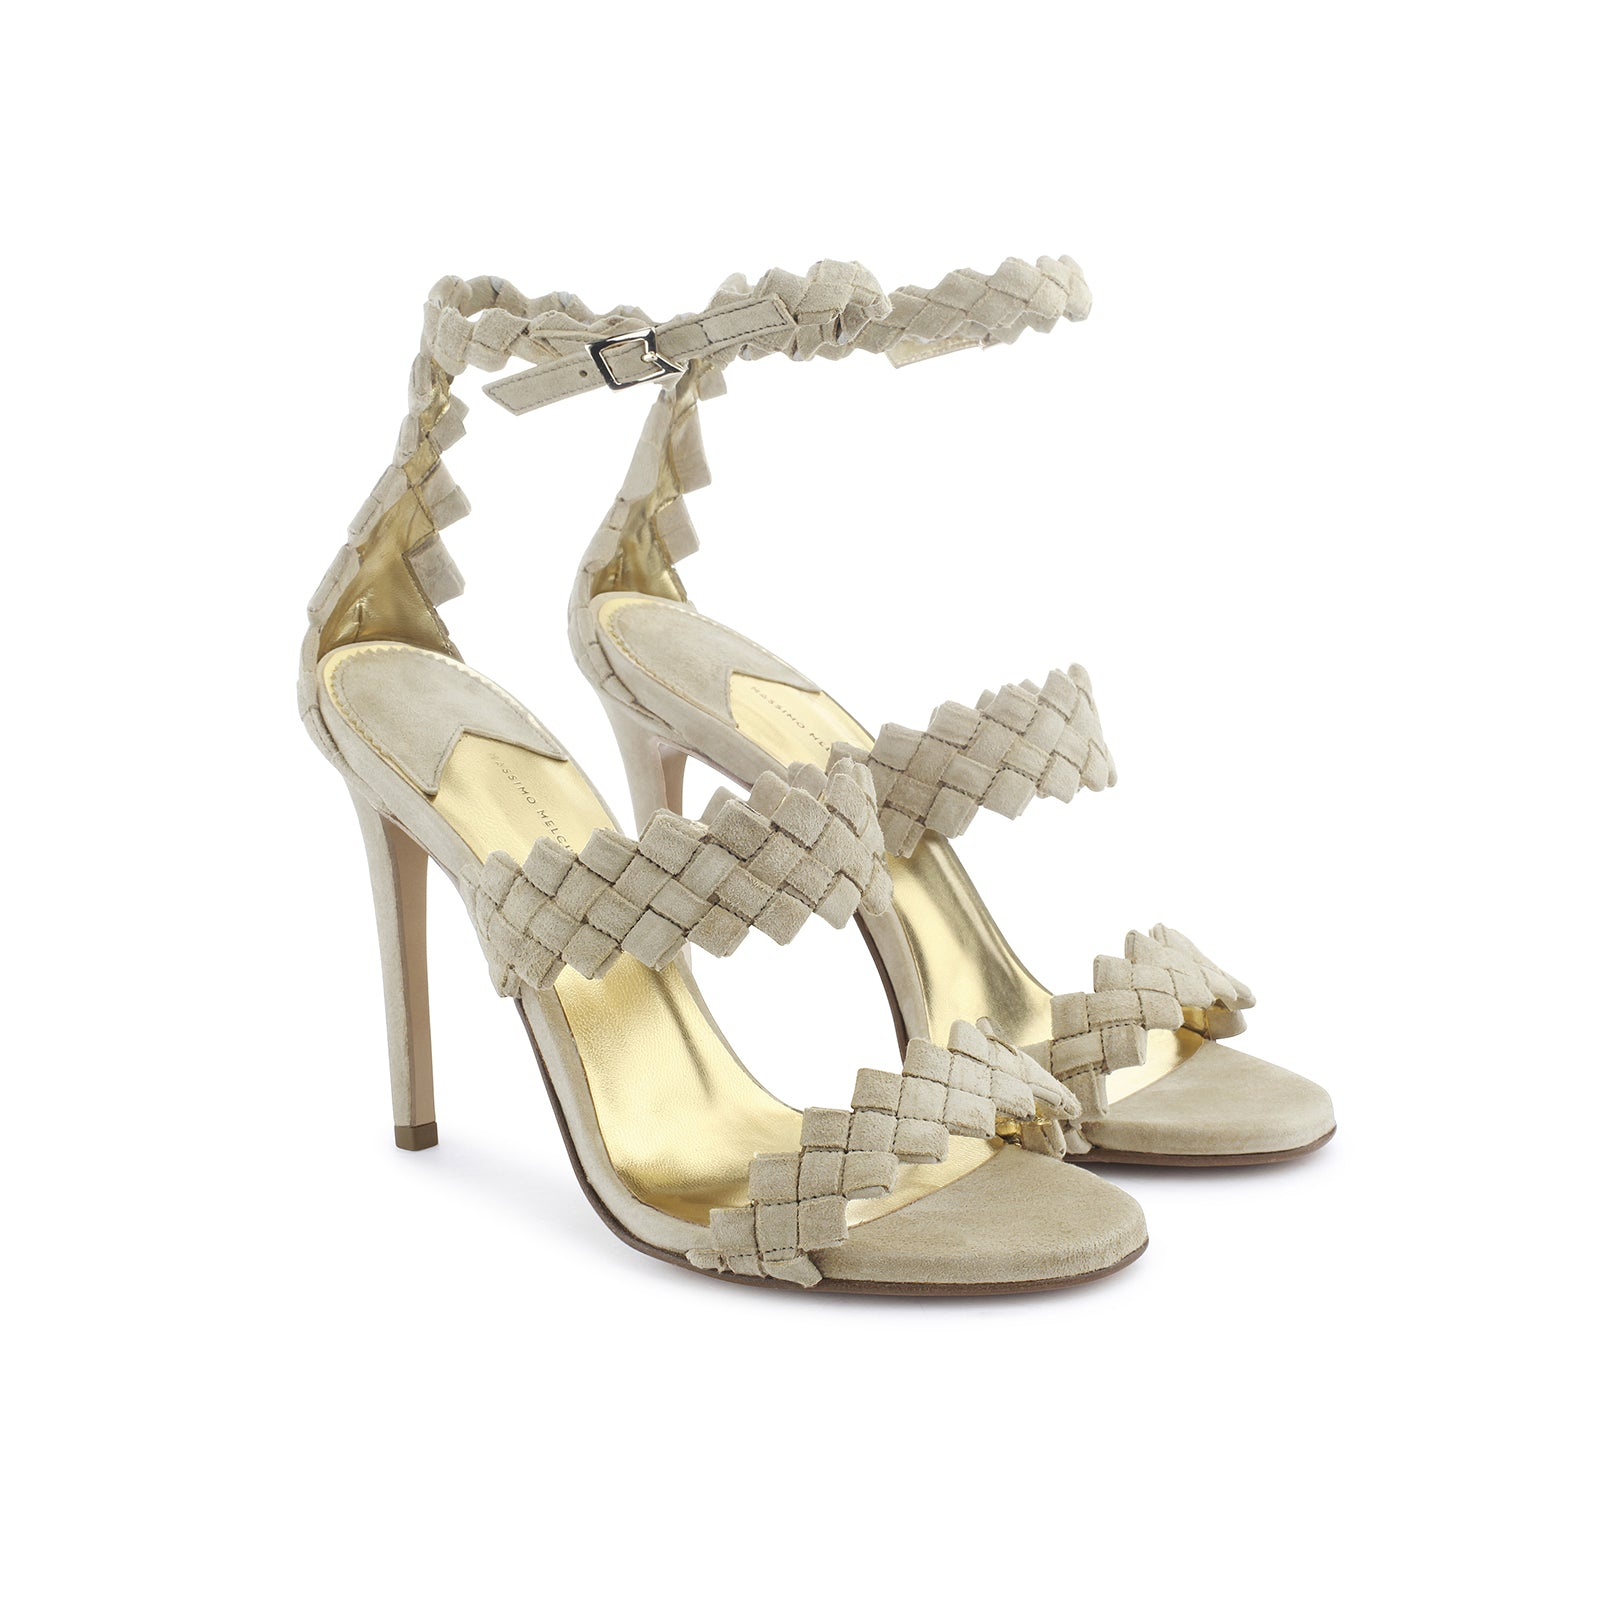 The Woven Heeled Sandal